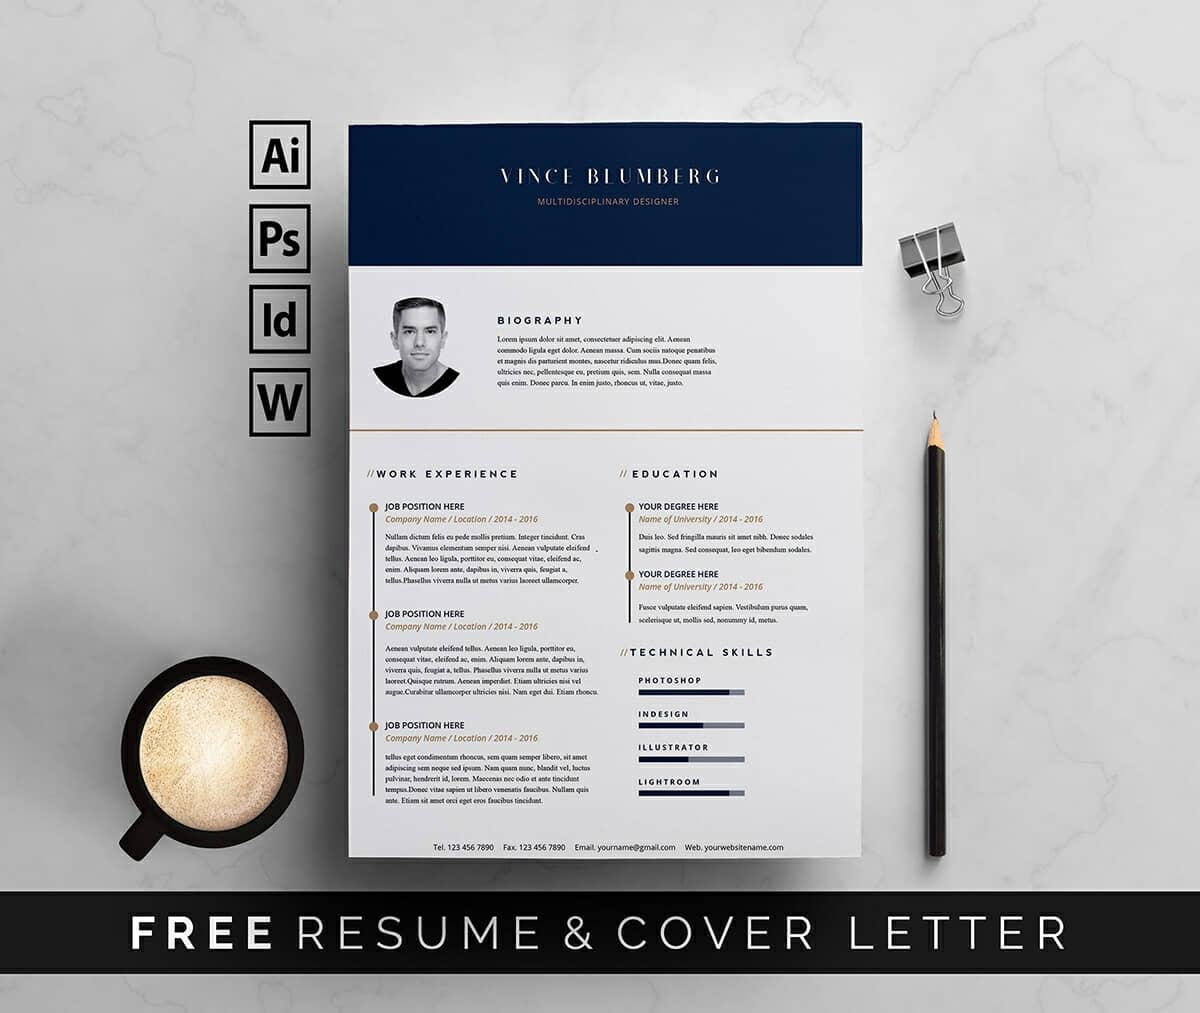 resume templates for microsoft word free graphic design template piping foreman sample Resume Free Graphic Design Resume Template Word